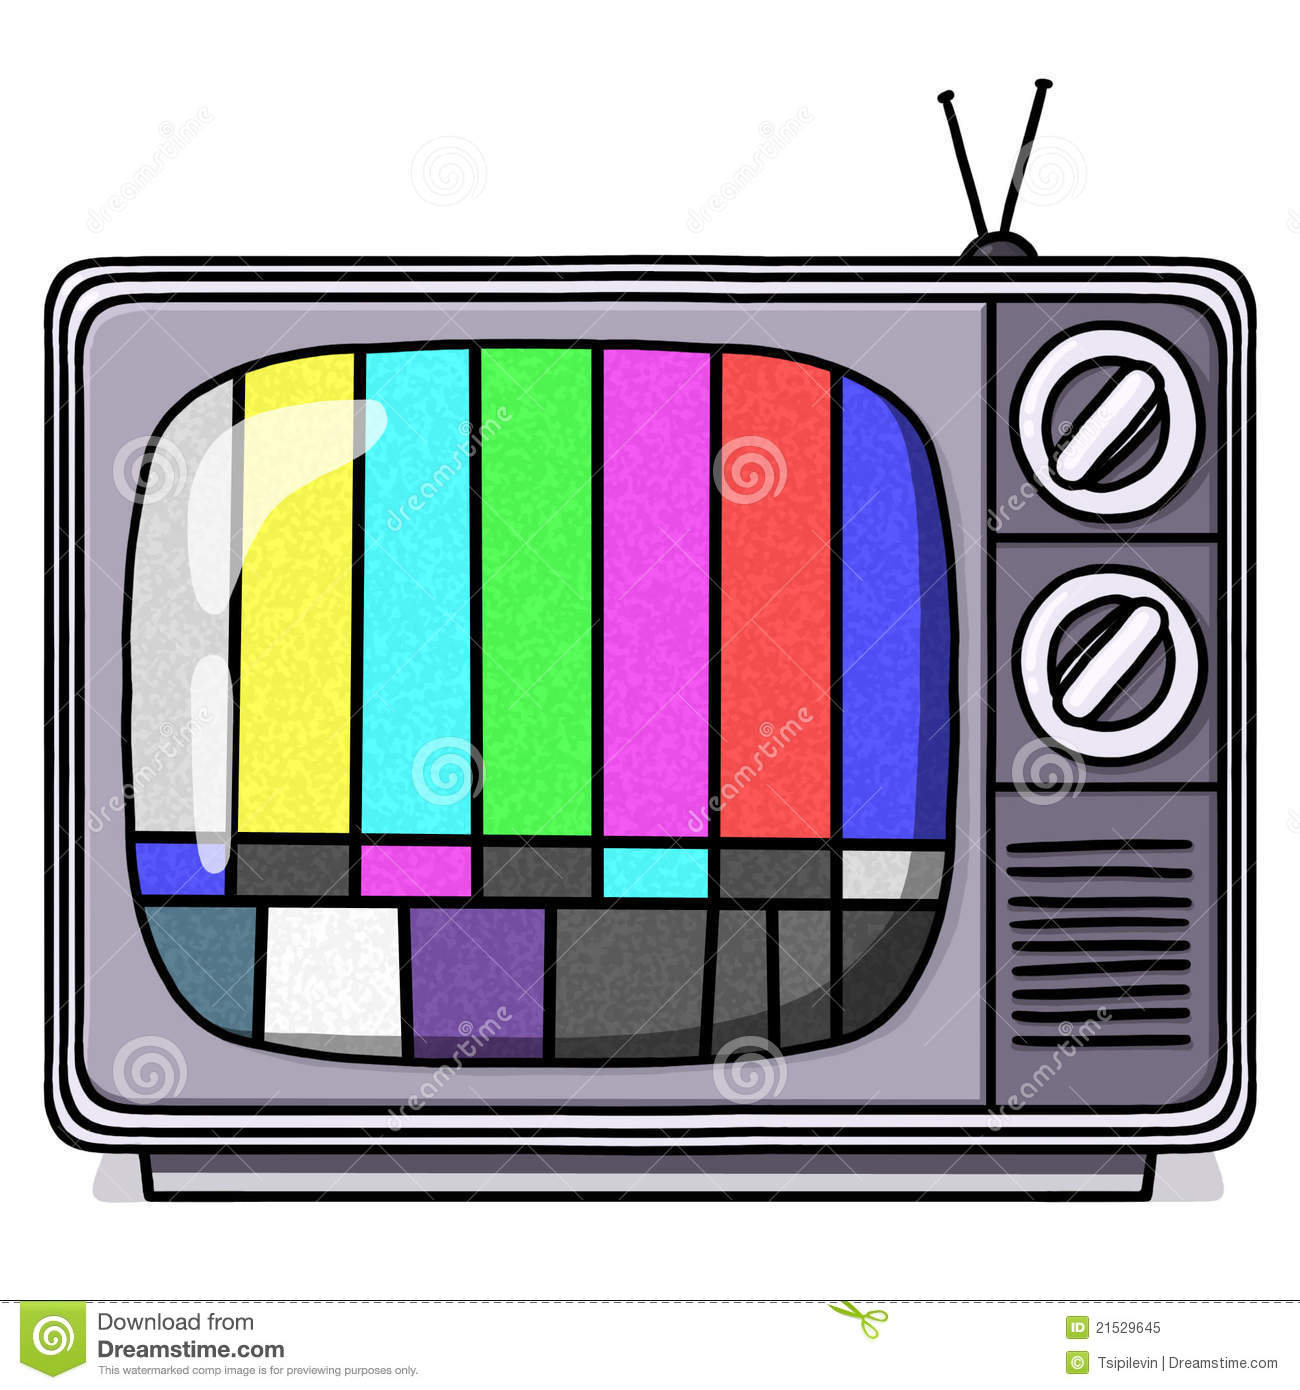 Tv test pattern clipart.